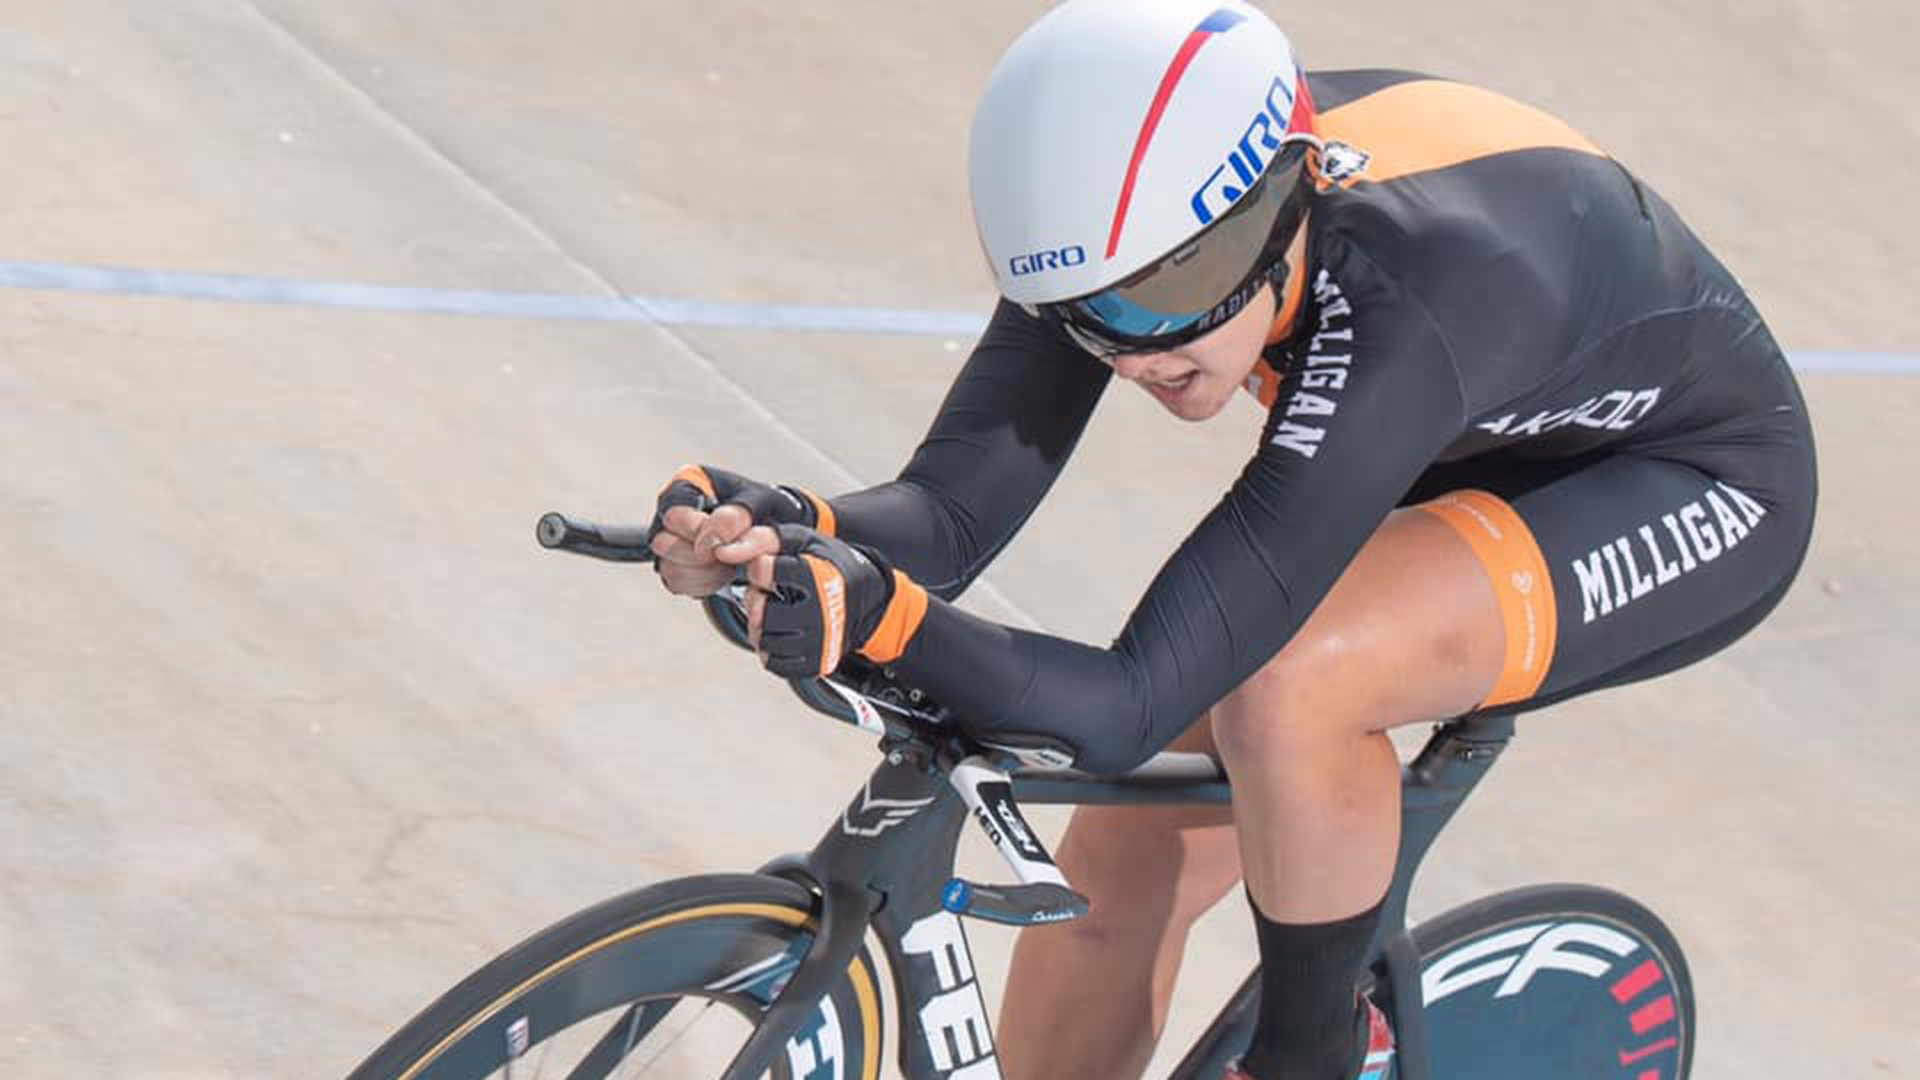 Milligan cycling finishes fourth at track nationals